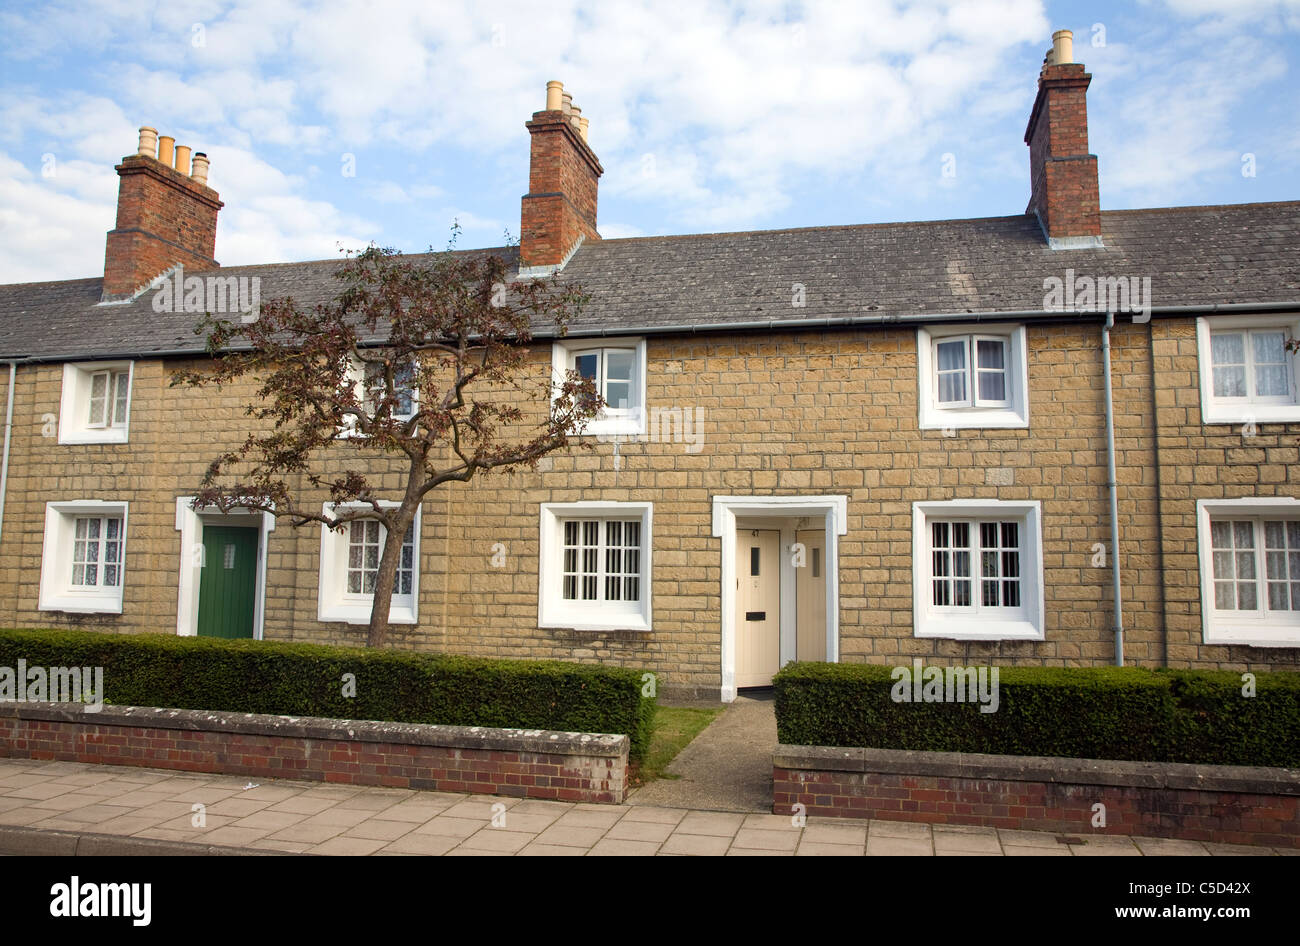 The Railway Village built by GWR to house workers in the 1840s, Swindon, England Stock Photo